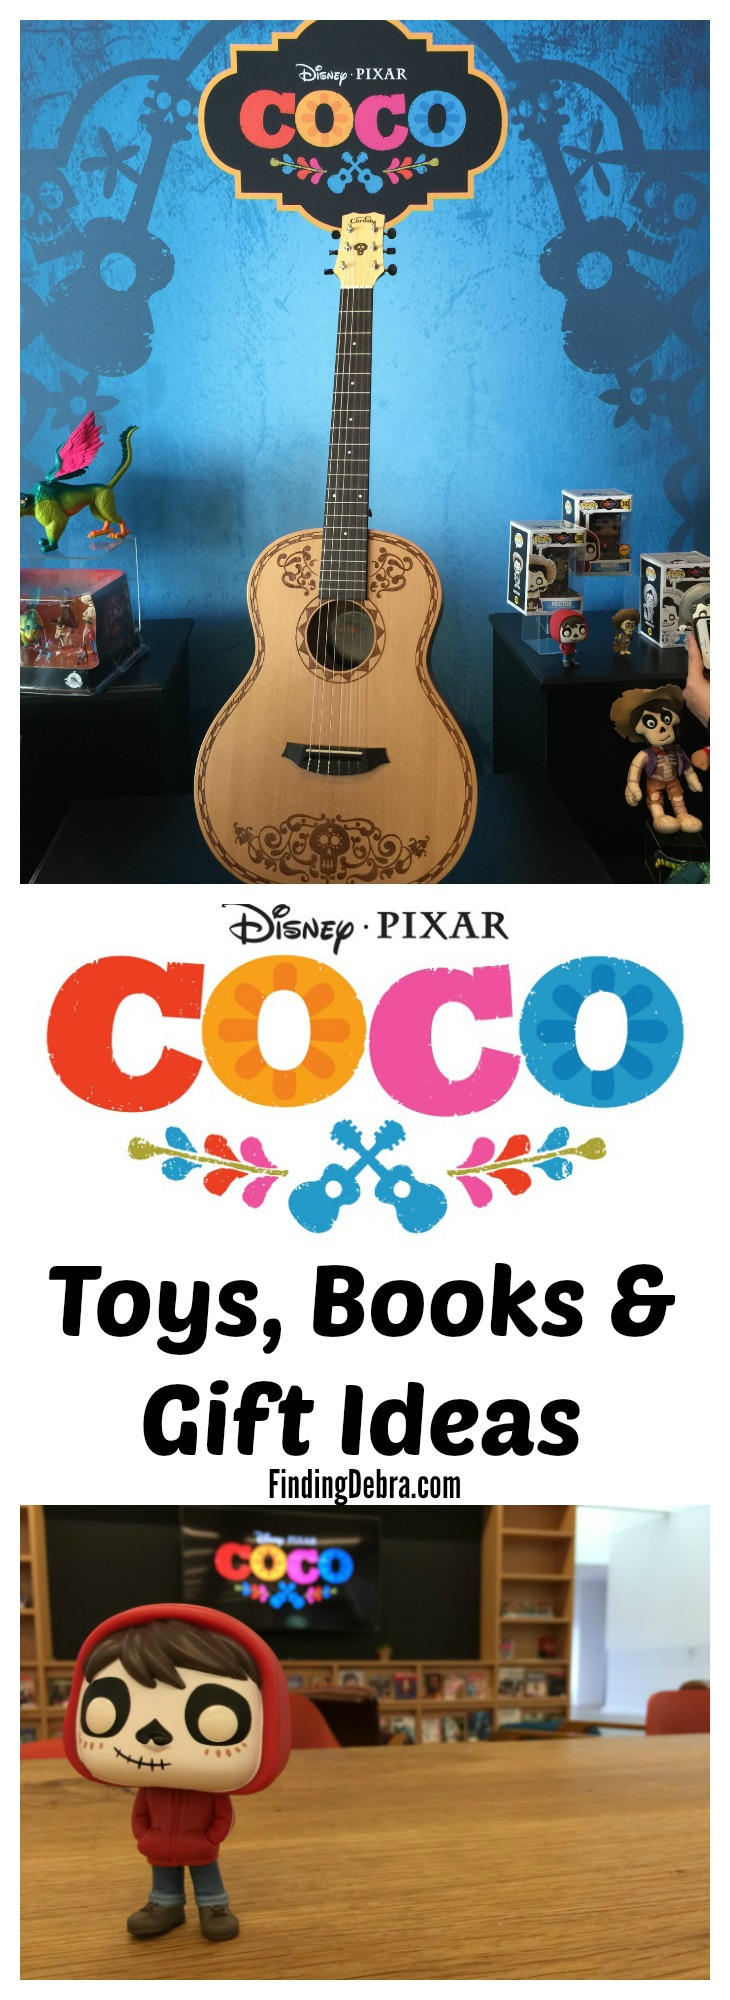 Disney*Pixar Coco Toys Books and Gift Ideas